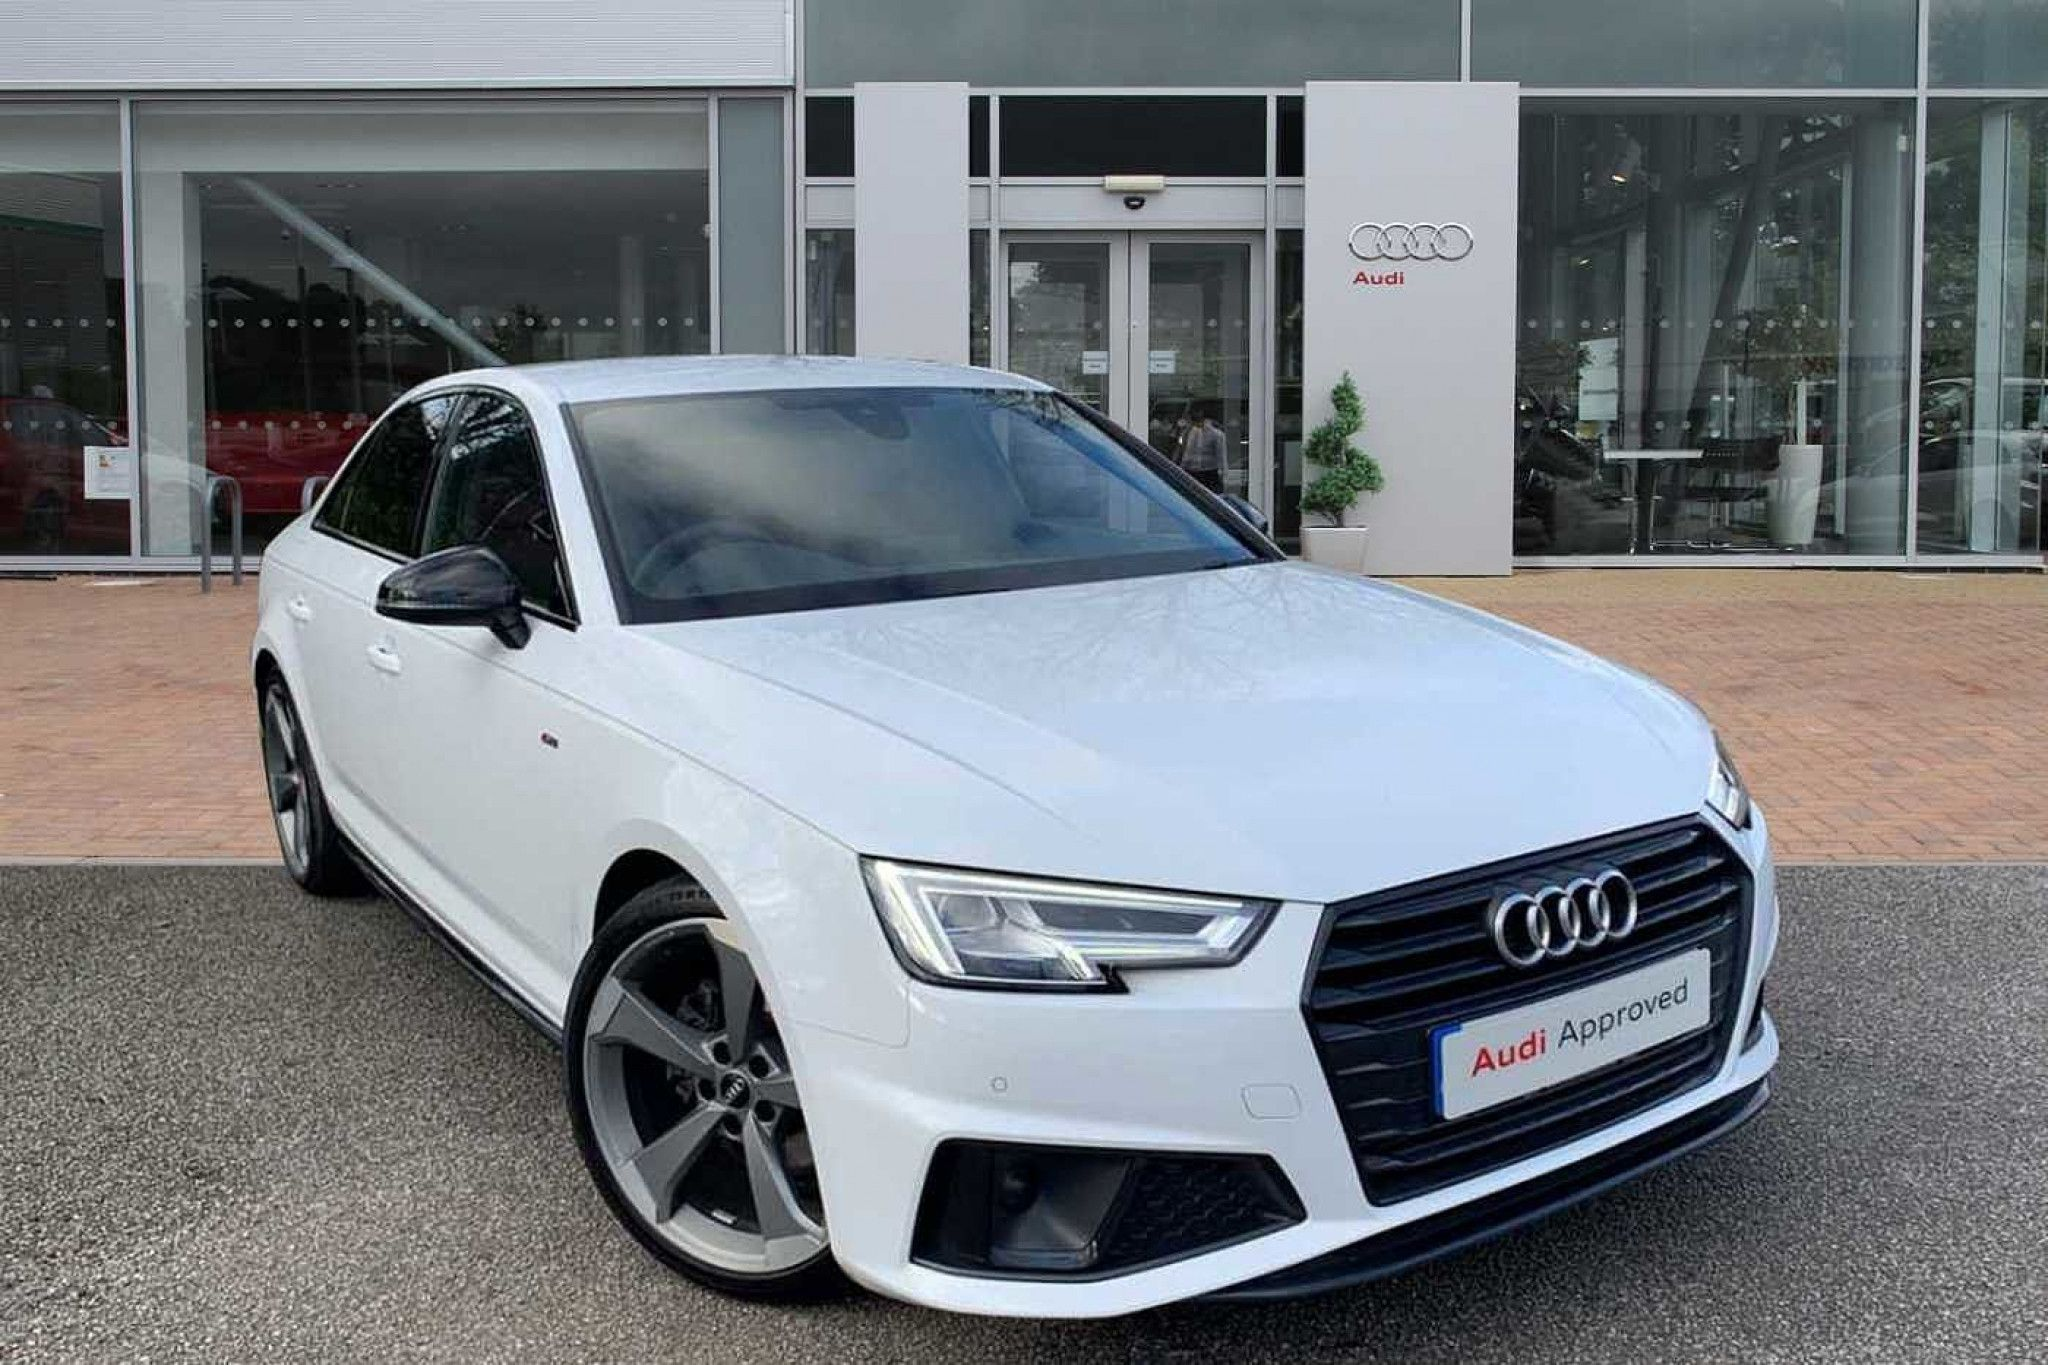 Audi A4 35 Tfsi Black Edition 4dr For Sale In 2020 Audi A4 Black Audi Audi A3